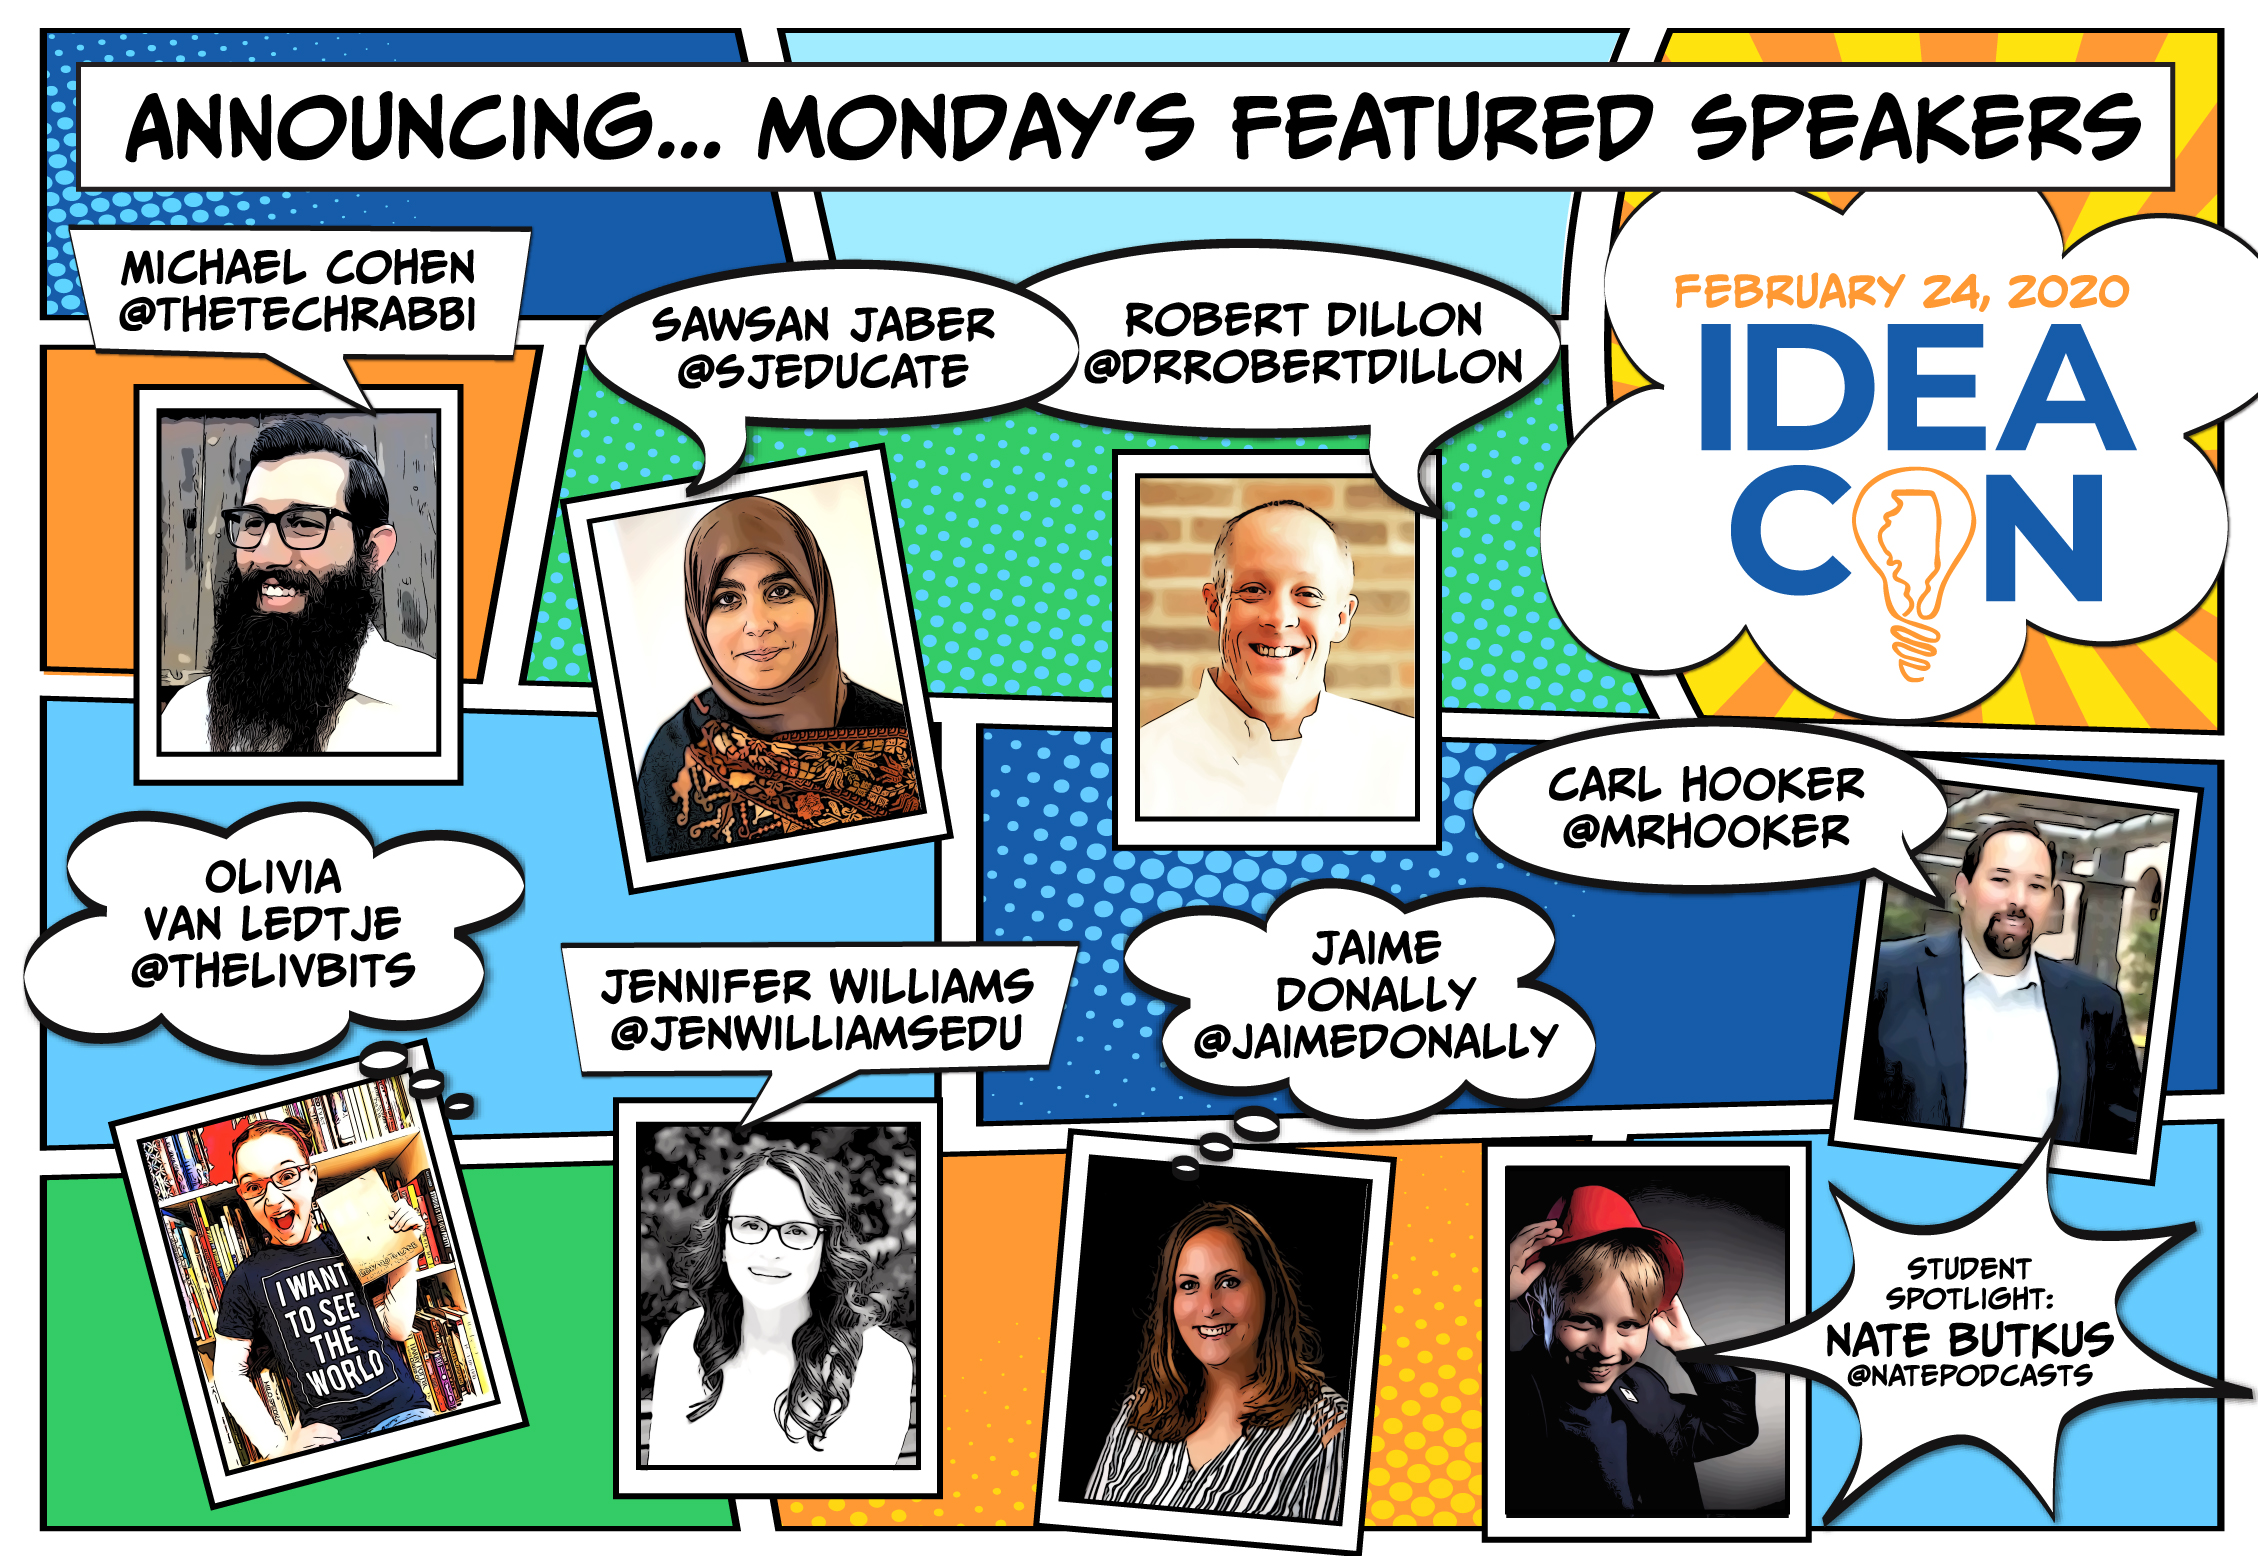 Monday Featured Speakers